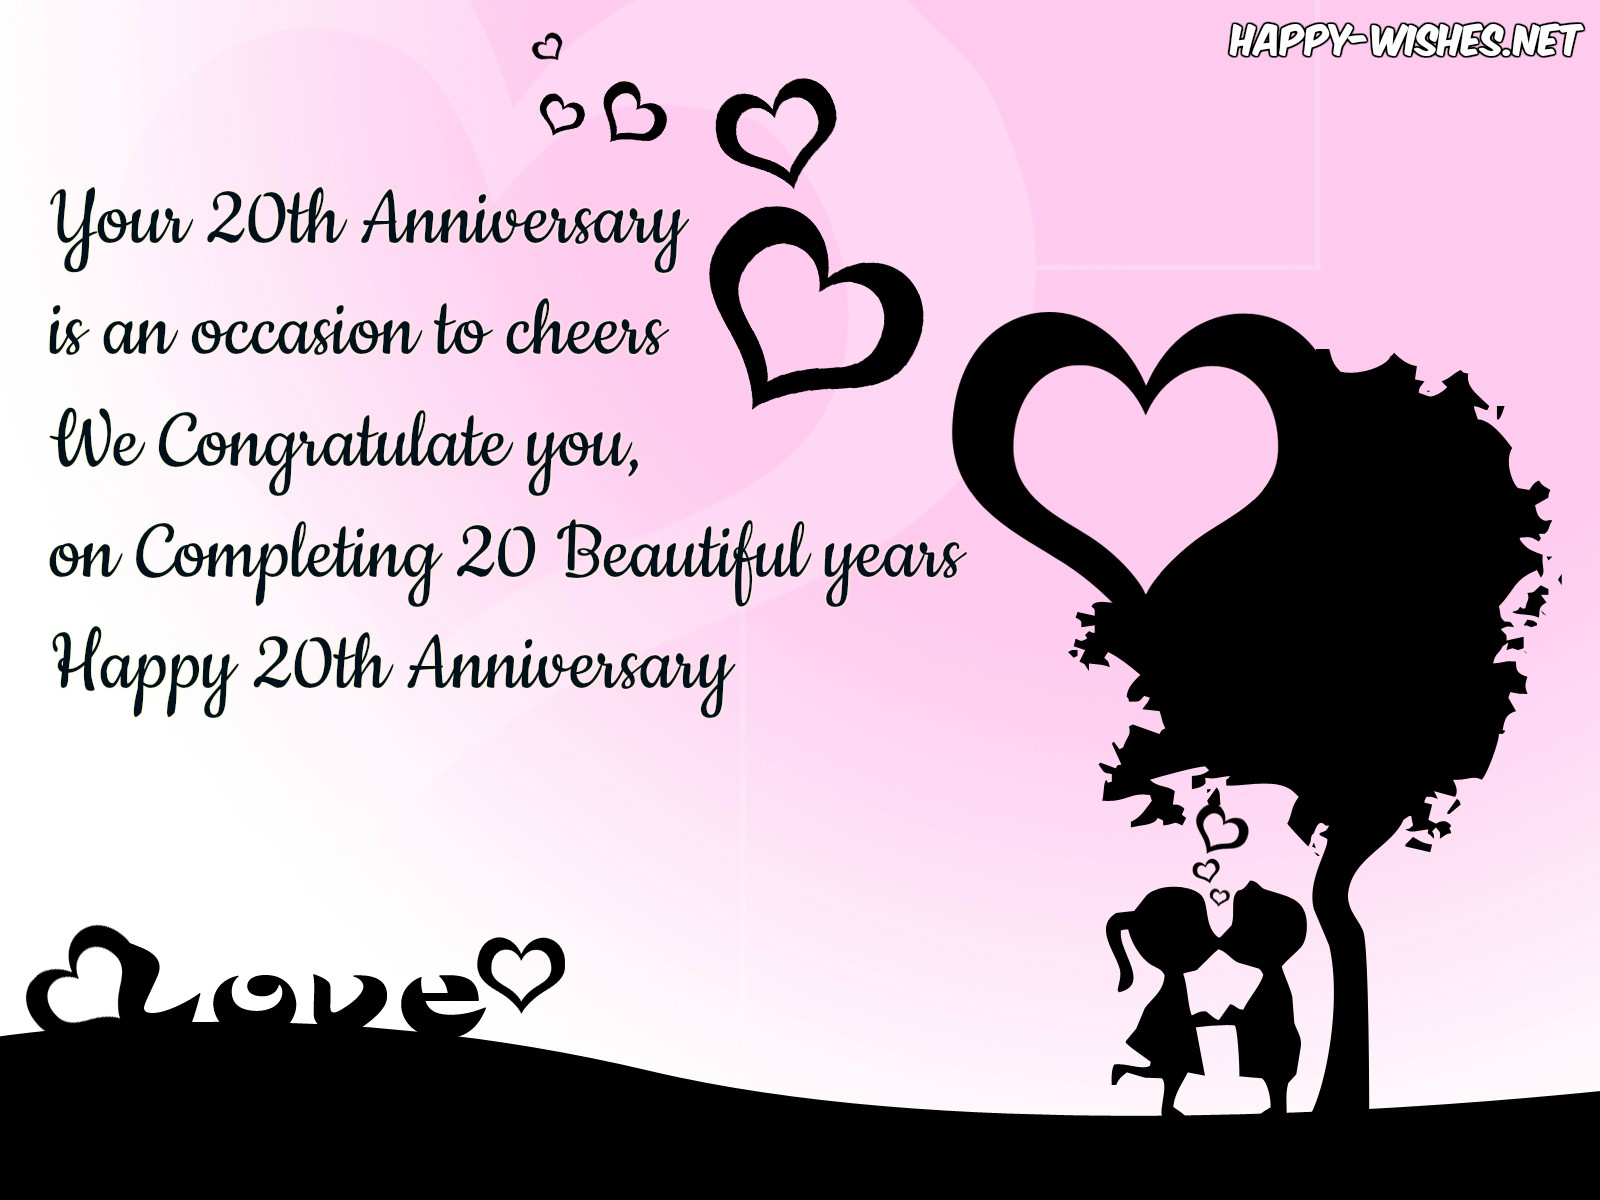 Happy 20th Anniversary Wishes Quotes & Messages